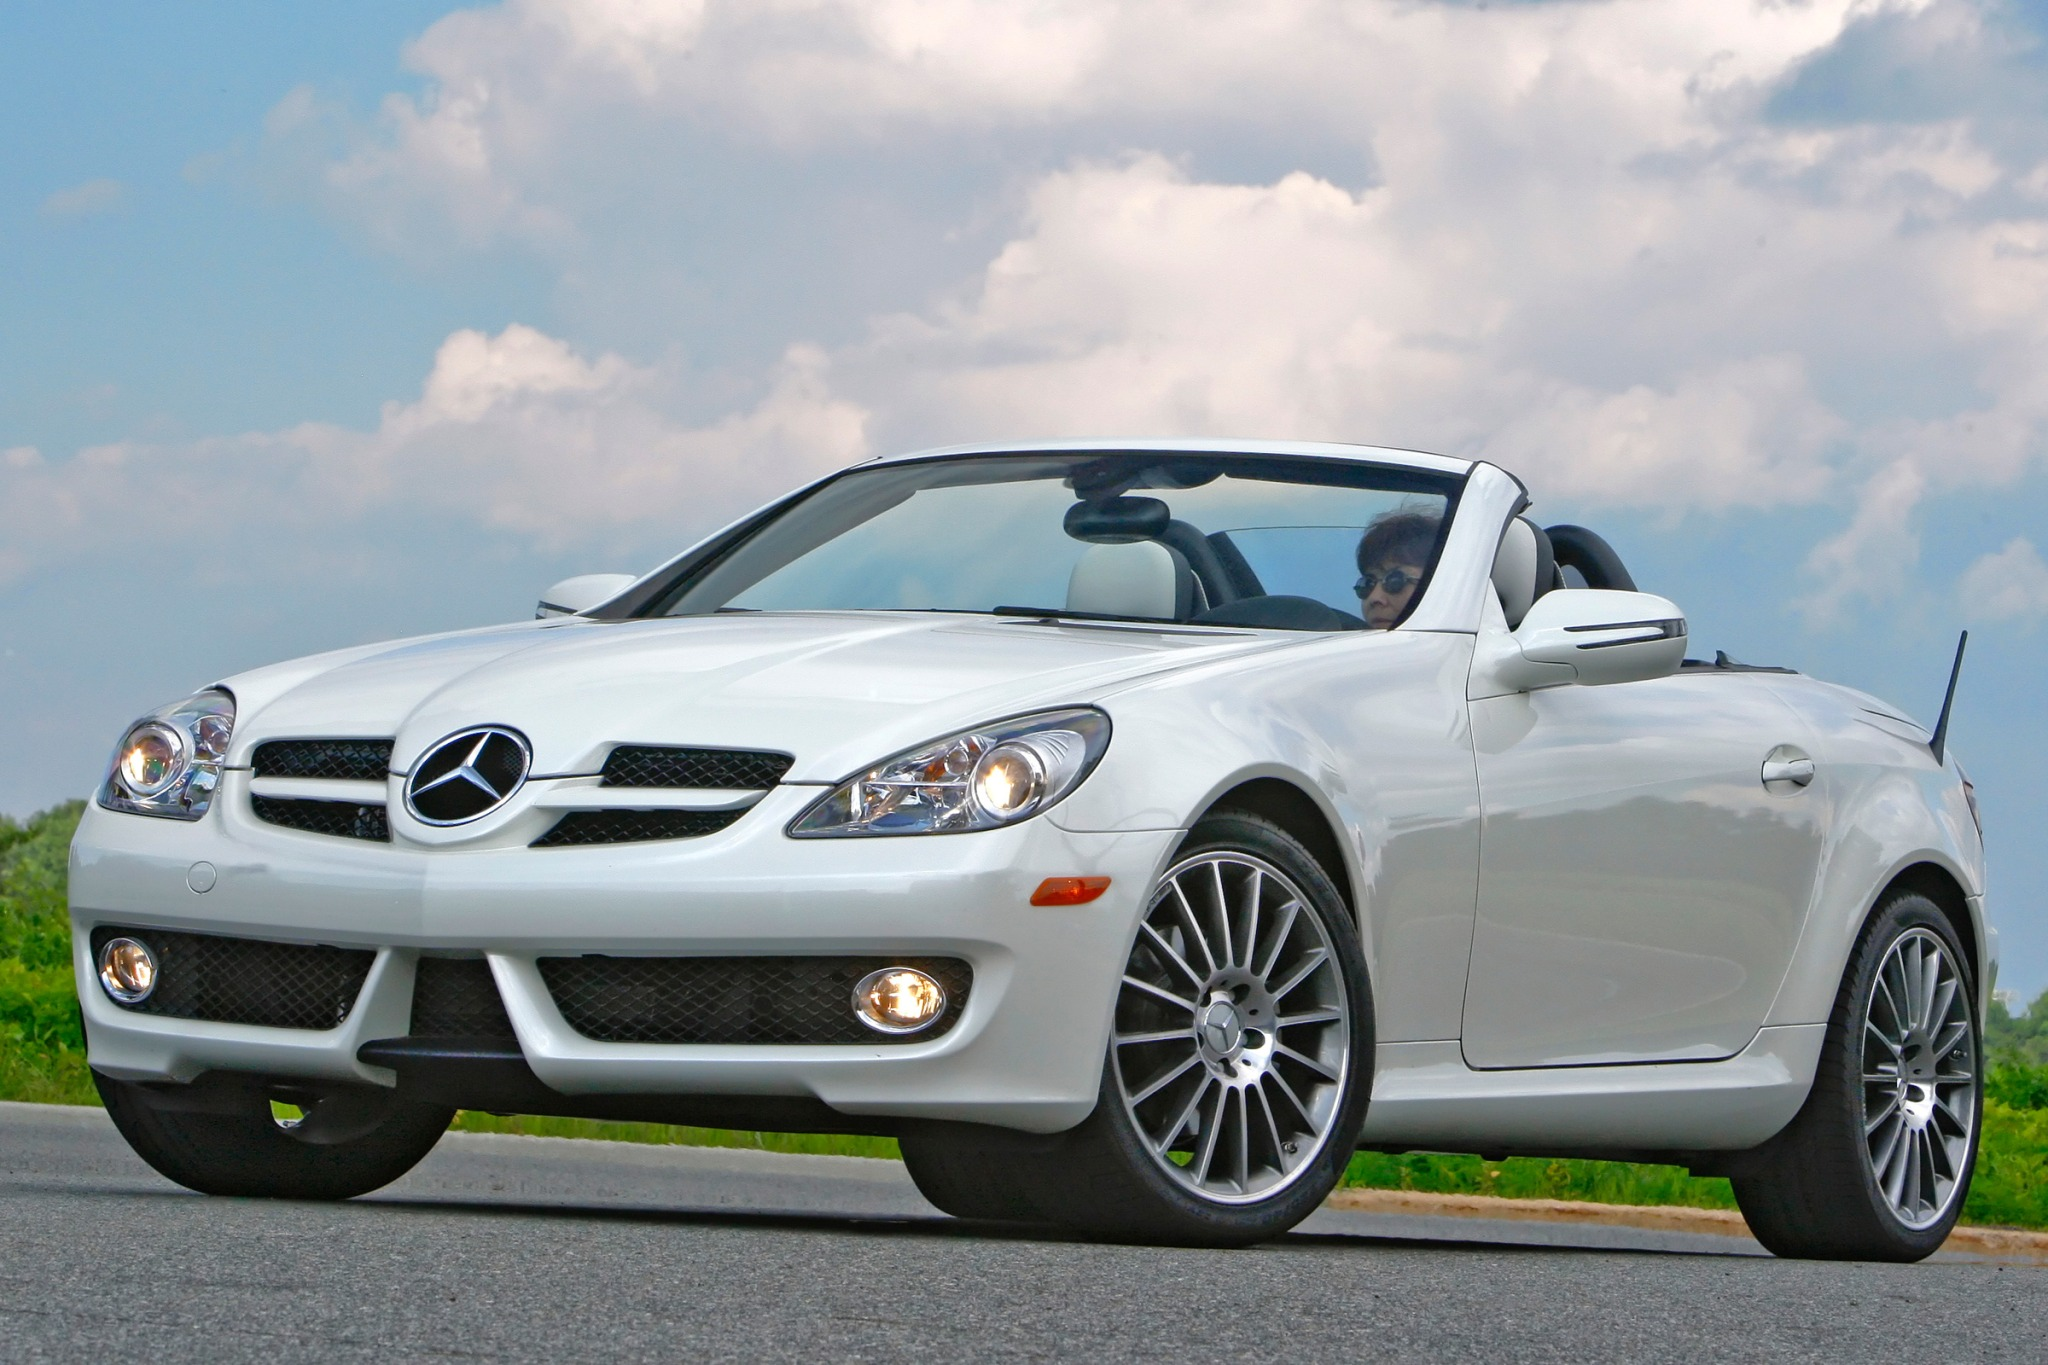 2010 Mercedes-Benz SLK-Cl interior #8